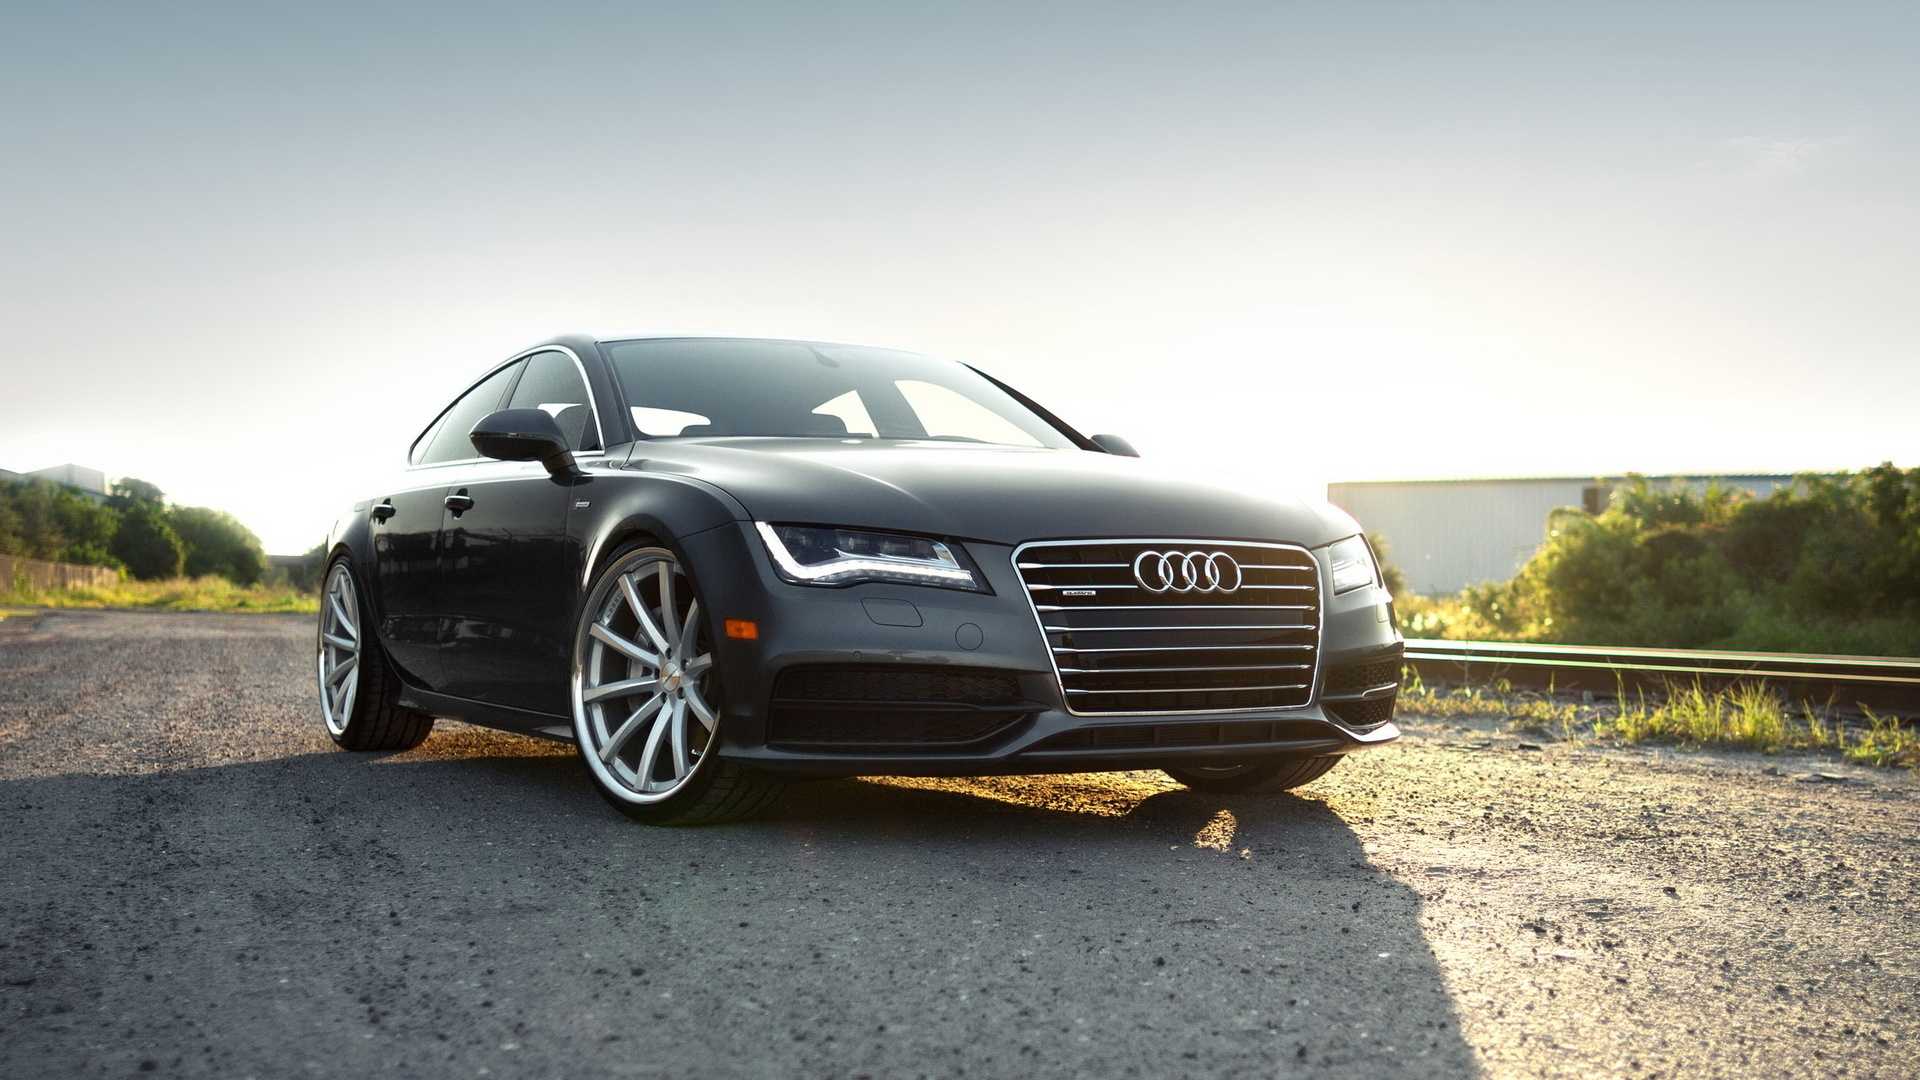 Audi A7 Sportback Showing Wallpapers 1920x1080 634848